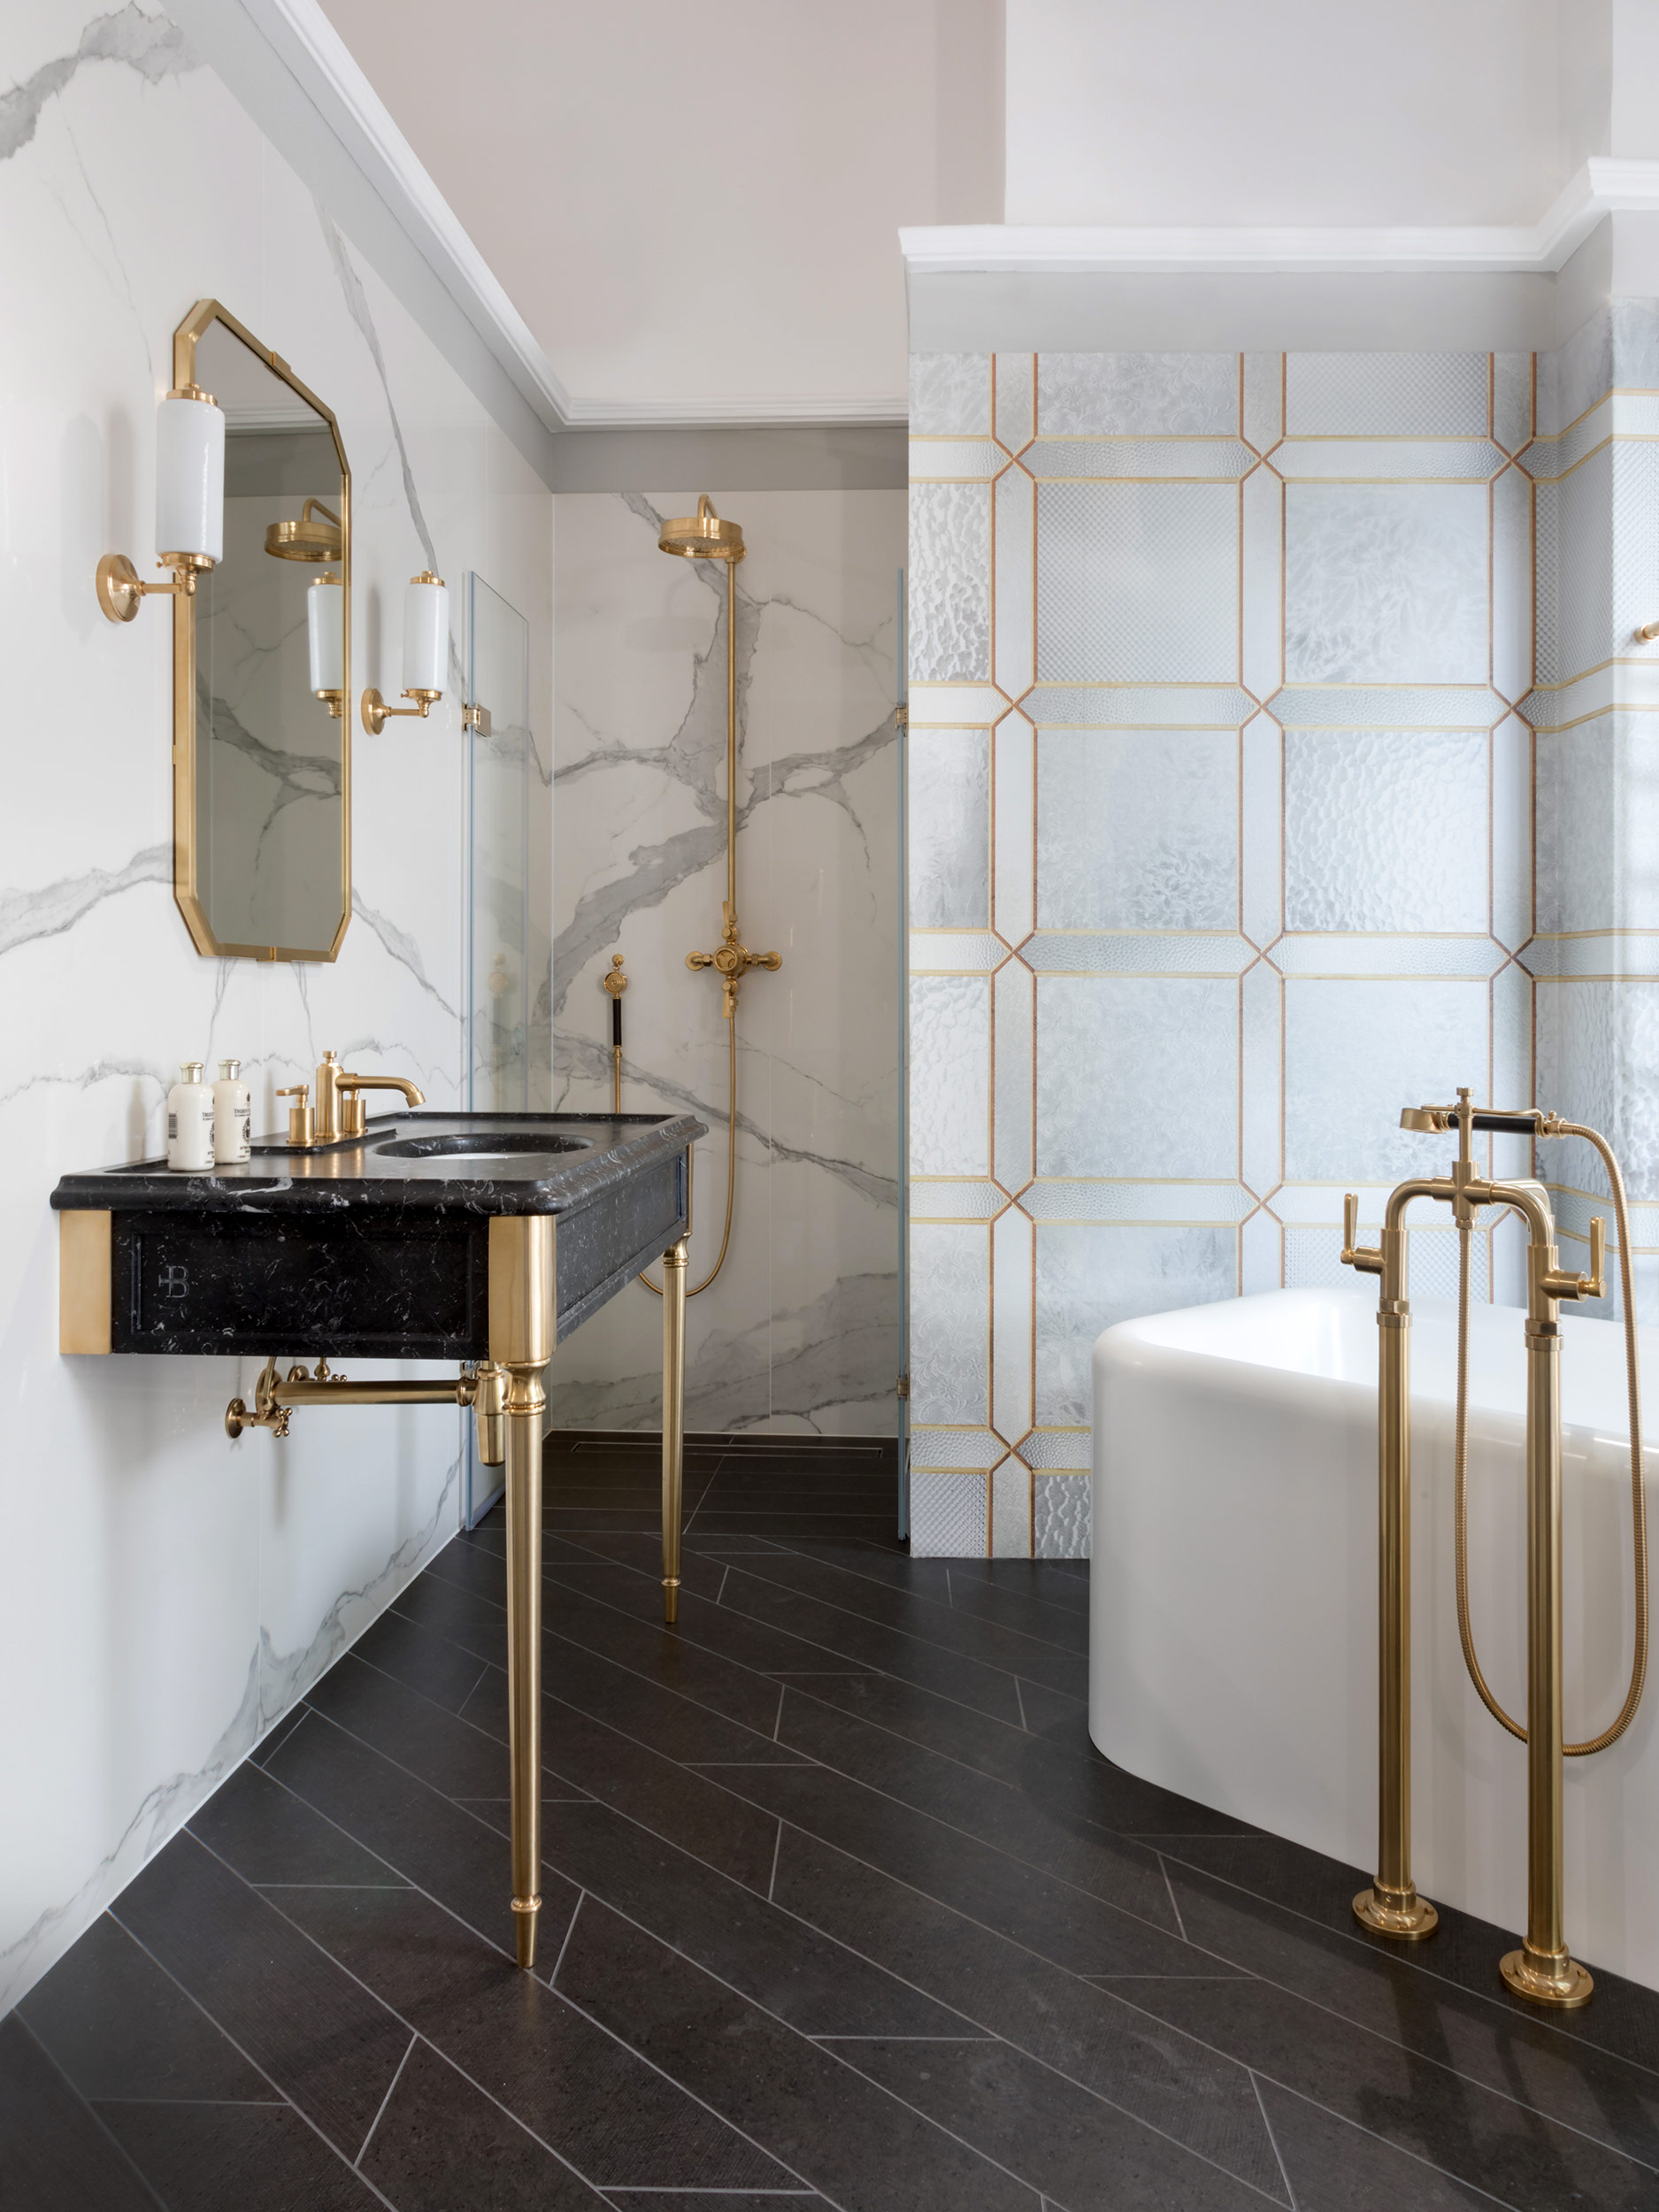 West One Bathrooms Knightsbridge Showroom Thurloe Place 1a